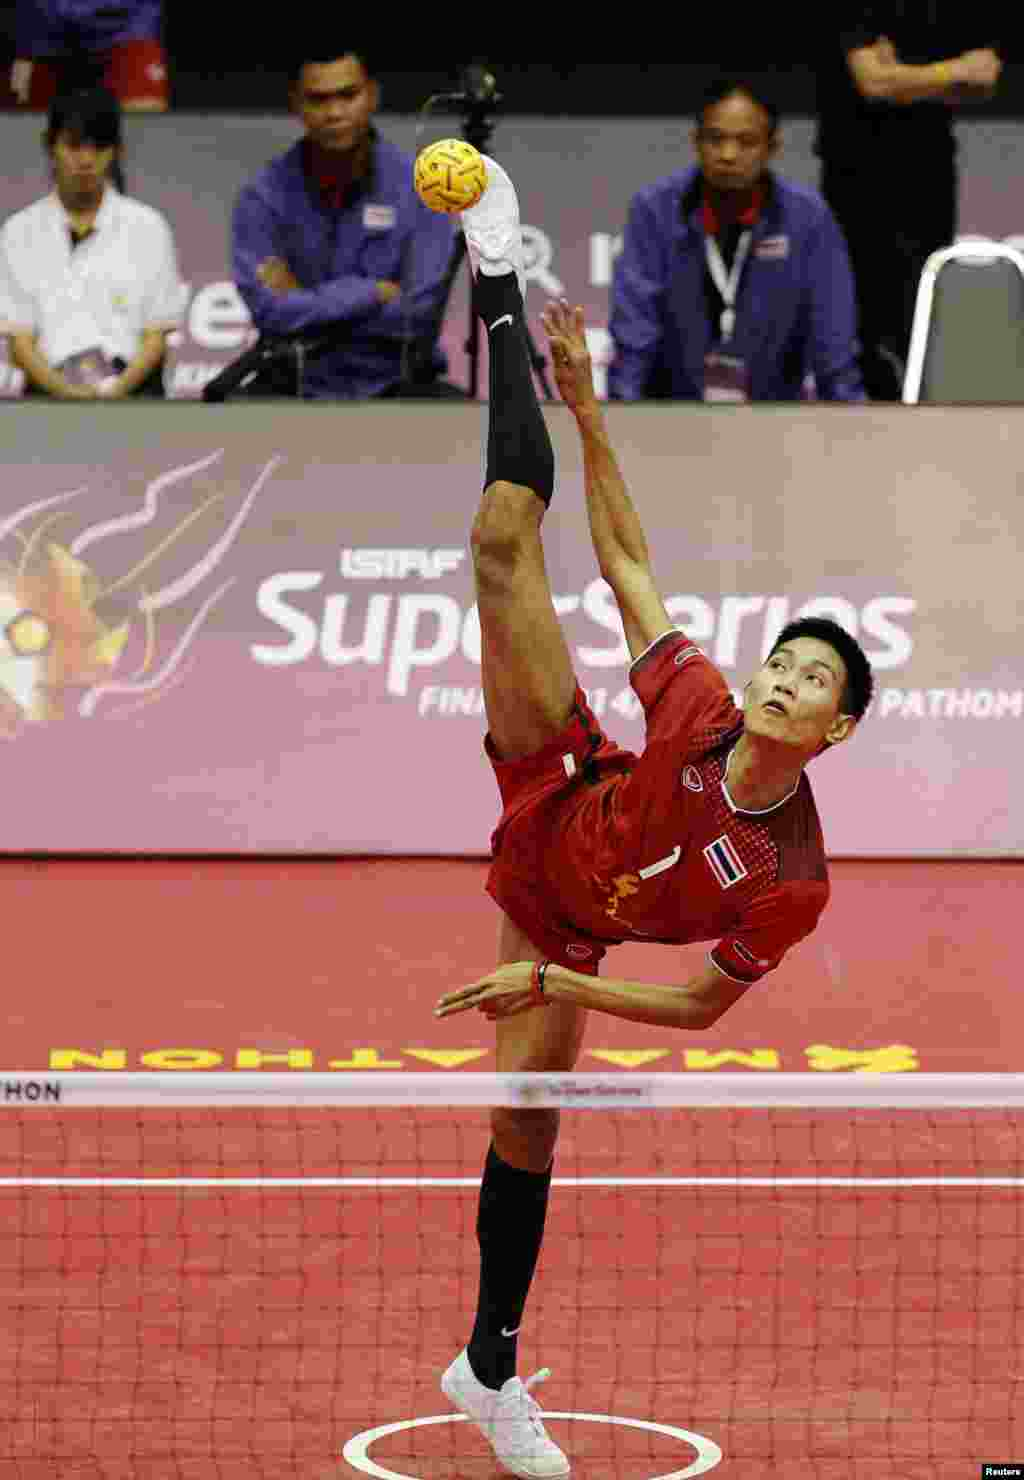 Sitting Khamchan of Thailand is seen in action against Myanmar during their group stage match in the Sepak Takraw Super Series Finals at the Nakhon Pathom Municipal Gymnasium, Thailand. (Credit: Asia Sports Ventures / Action Images via Reuters Livepic)